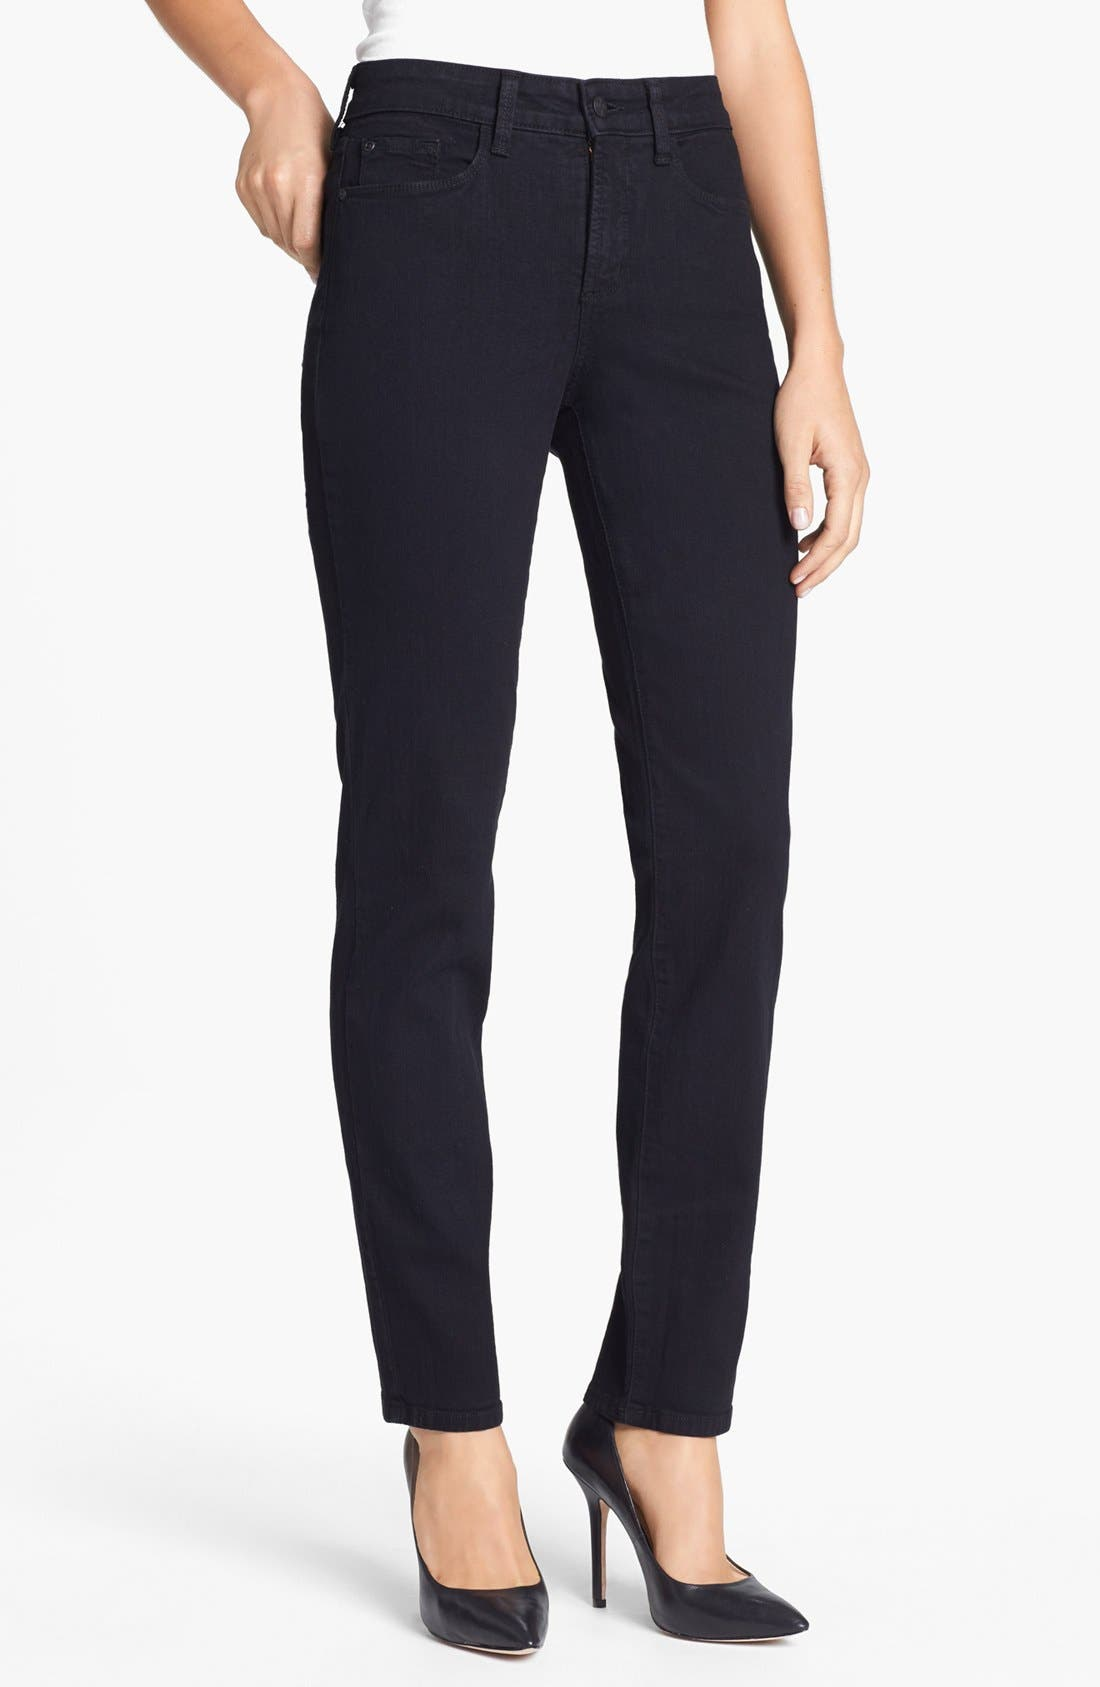 Main Image - NYDJ 'Alina' Stretch Skinny Jeans (Black)